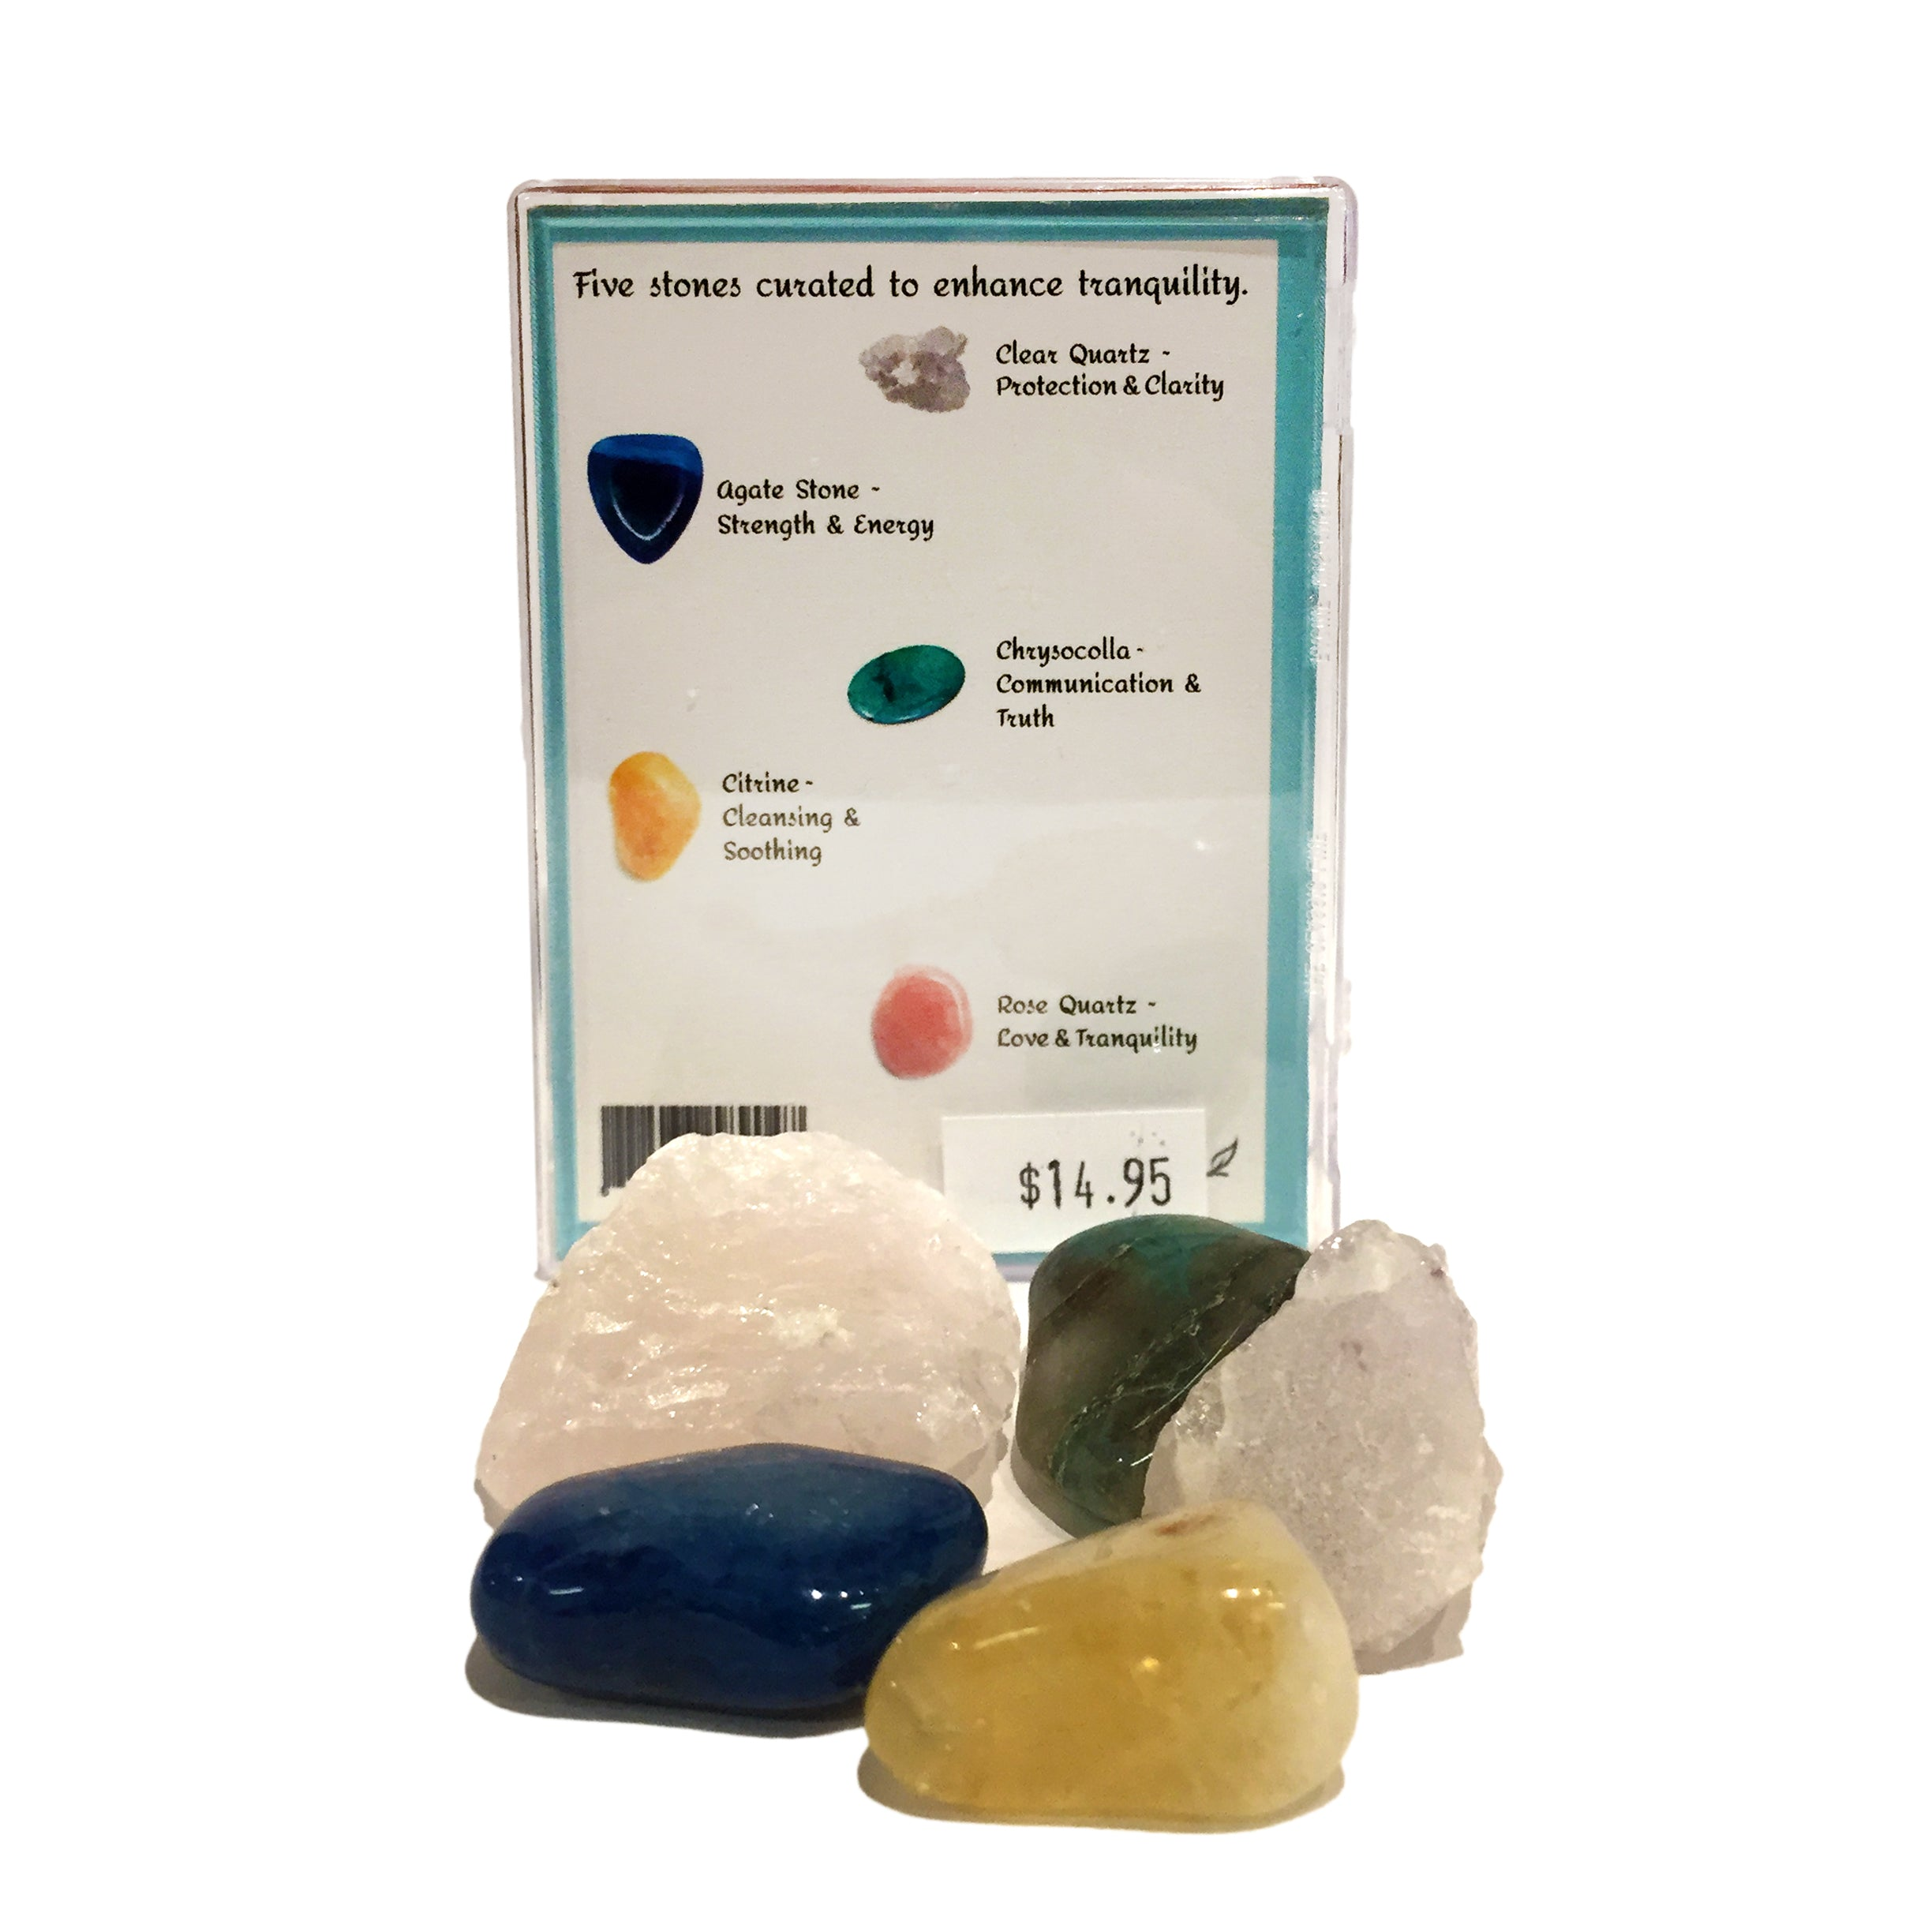 Gemstones for Tranquility